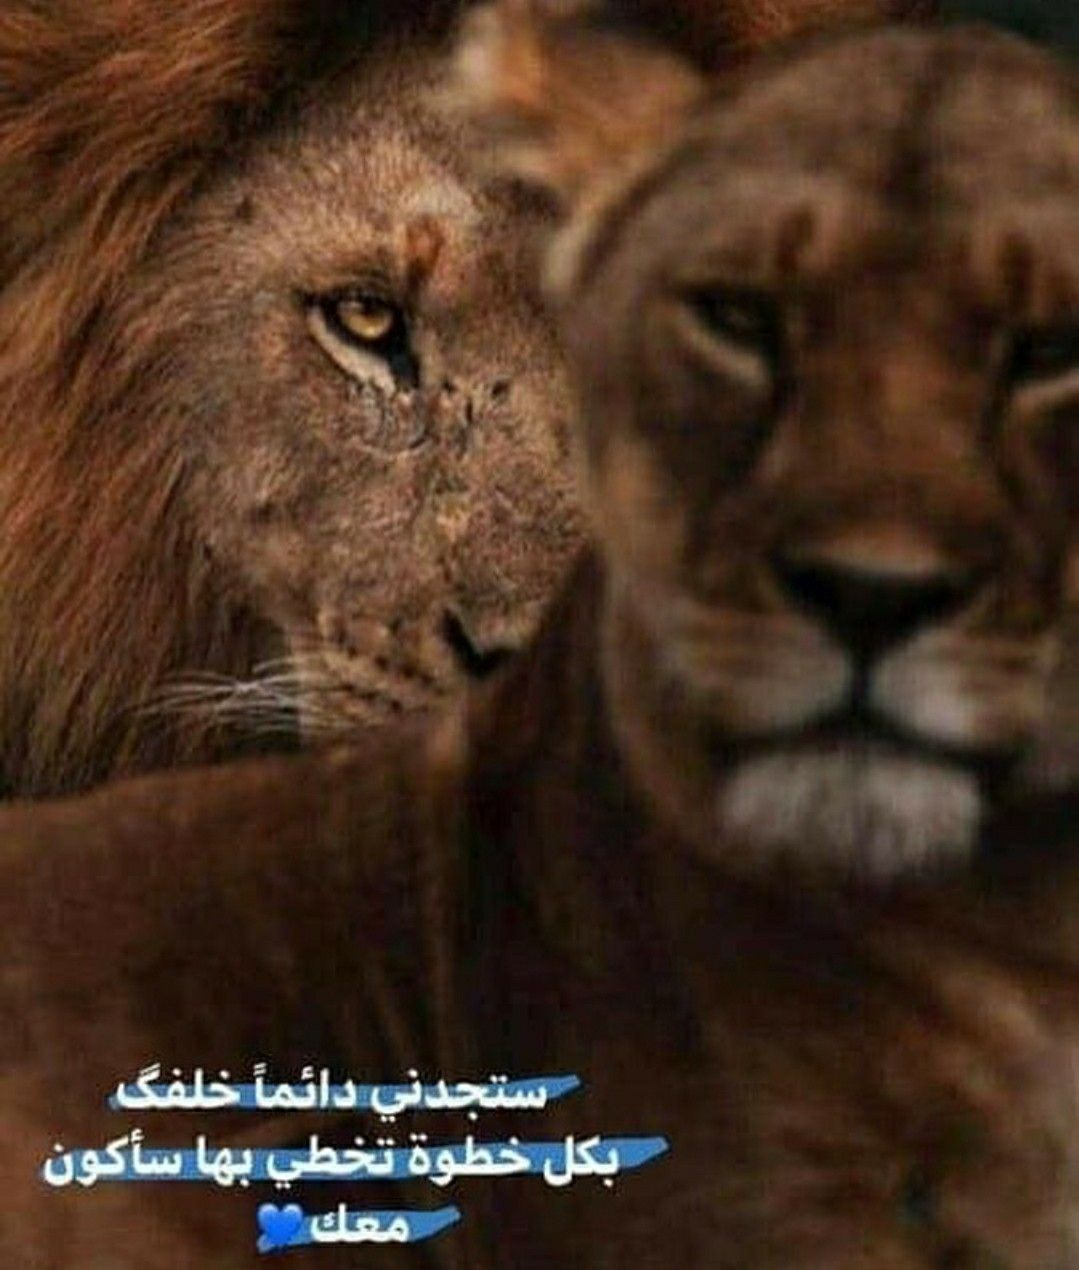 Pin By Asraa On Love In 2020 Funny Arabic Quotes Cute Muslim Couples Animal Silhouette